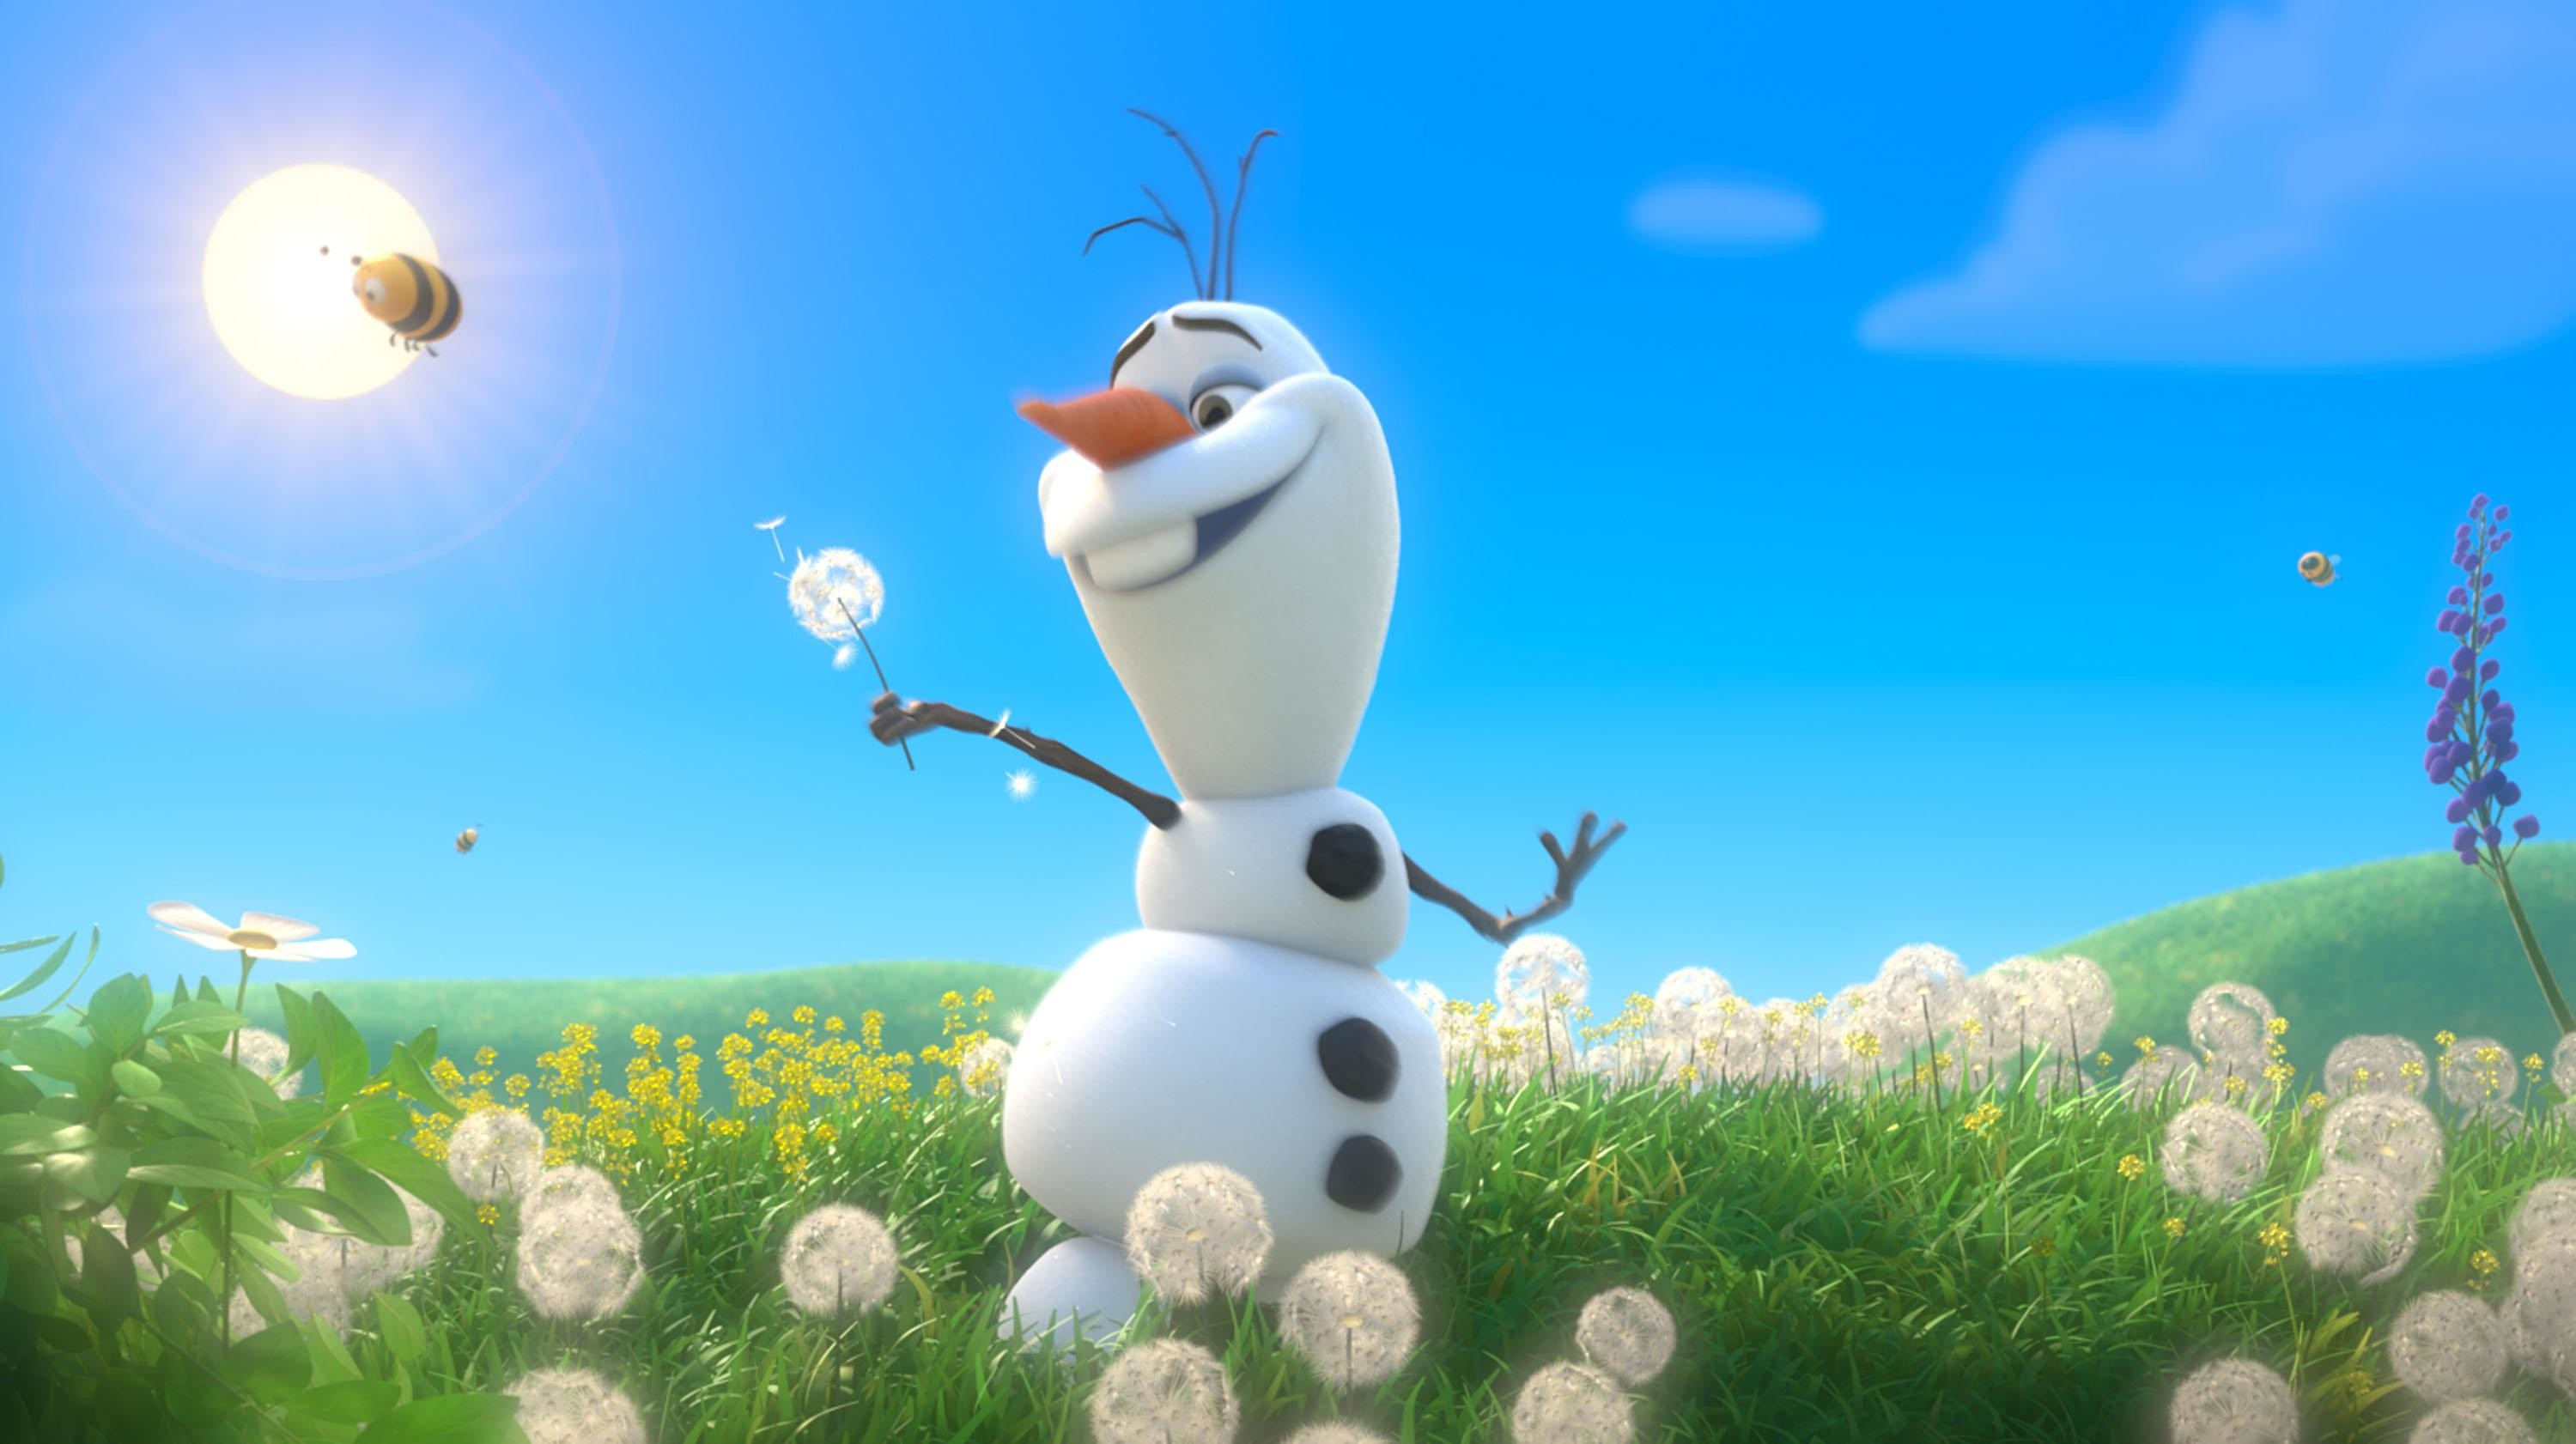 3000x1682 Olaf Wallpapers 0 HTML Code Christmas Snowman Wallpaper